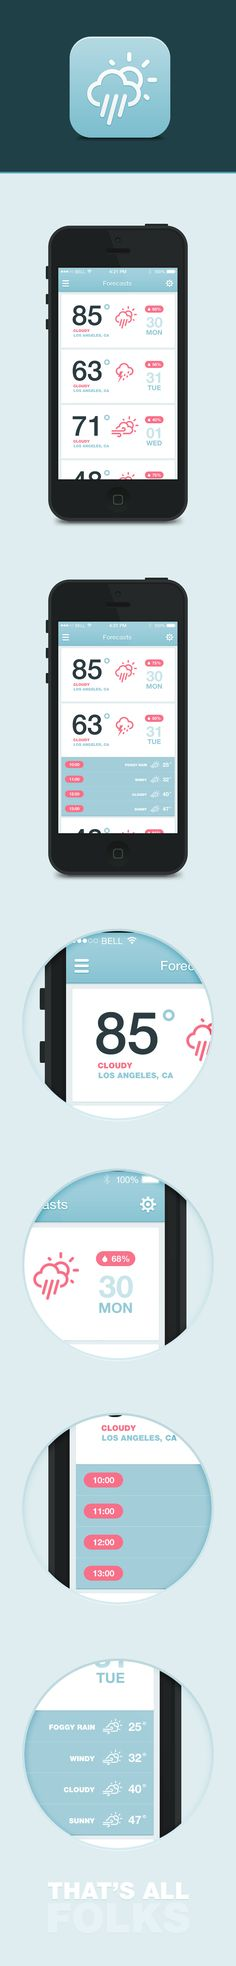 iOS7 Weather App by Dmitriy Haraberush, via Behance #ui